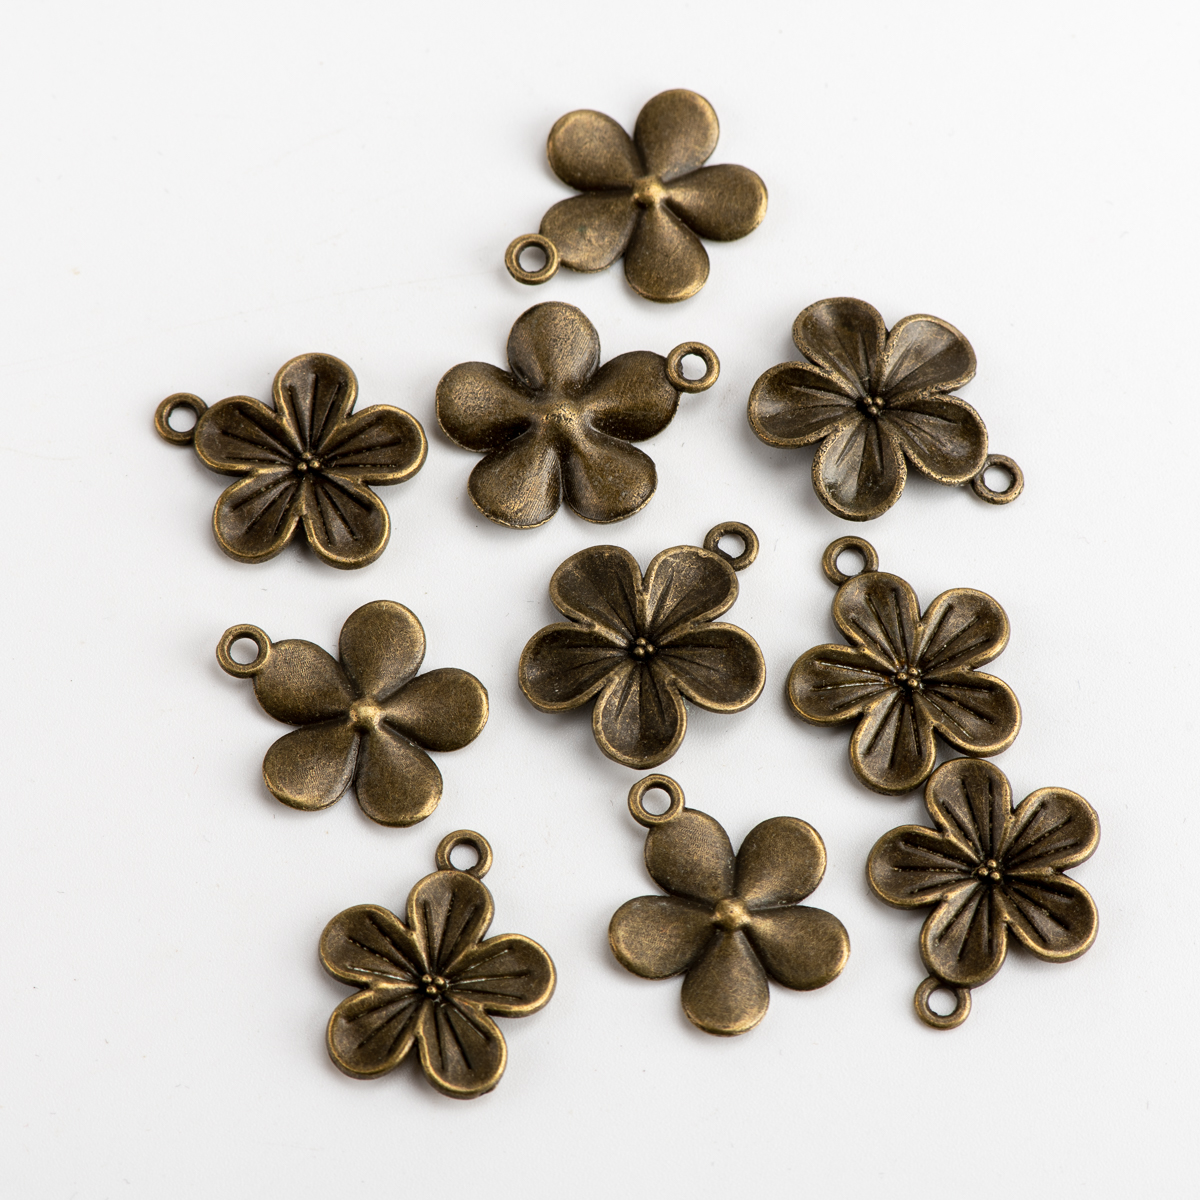 Flower DIY Alloy Pendant Jewelry Making Charms Jewelry Findings & Components For Jewelry Making #JZ211